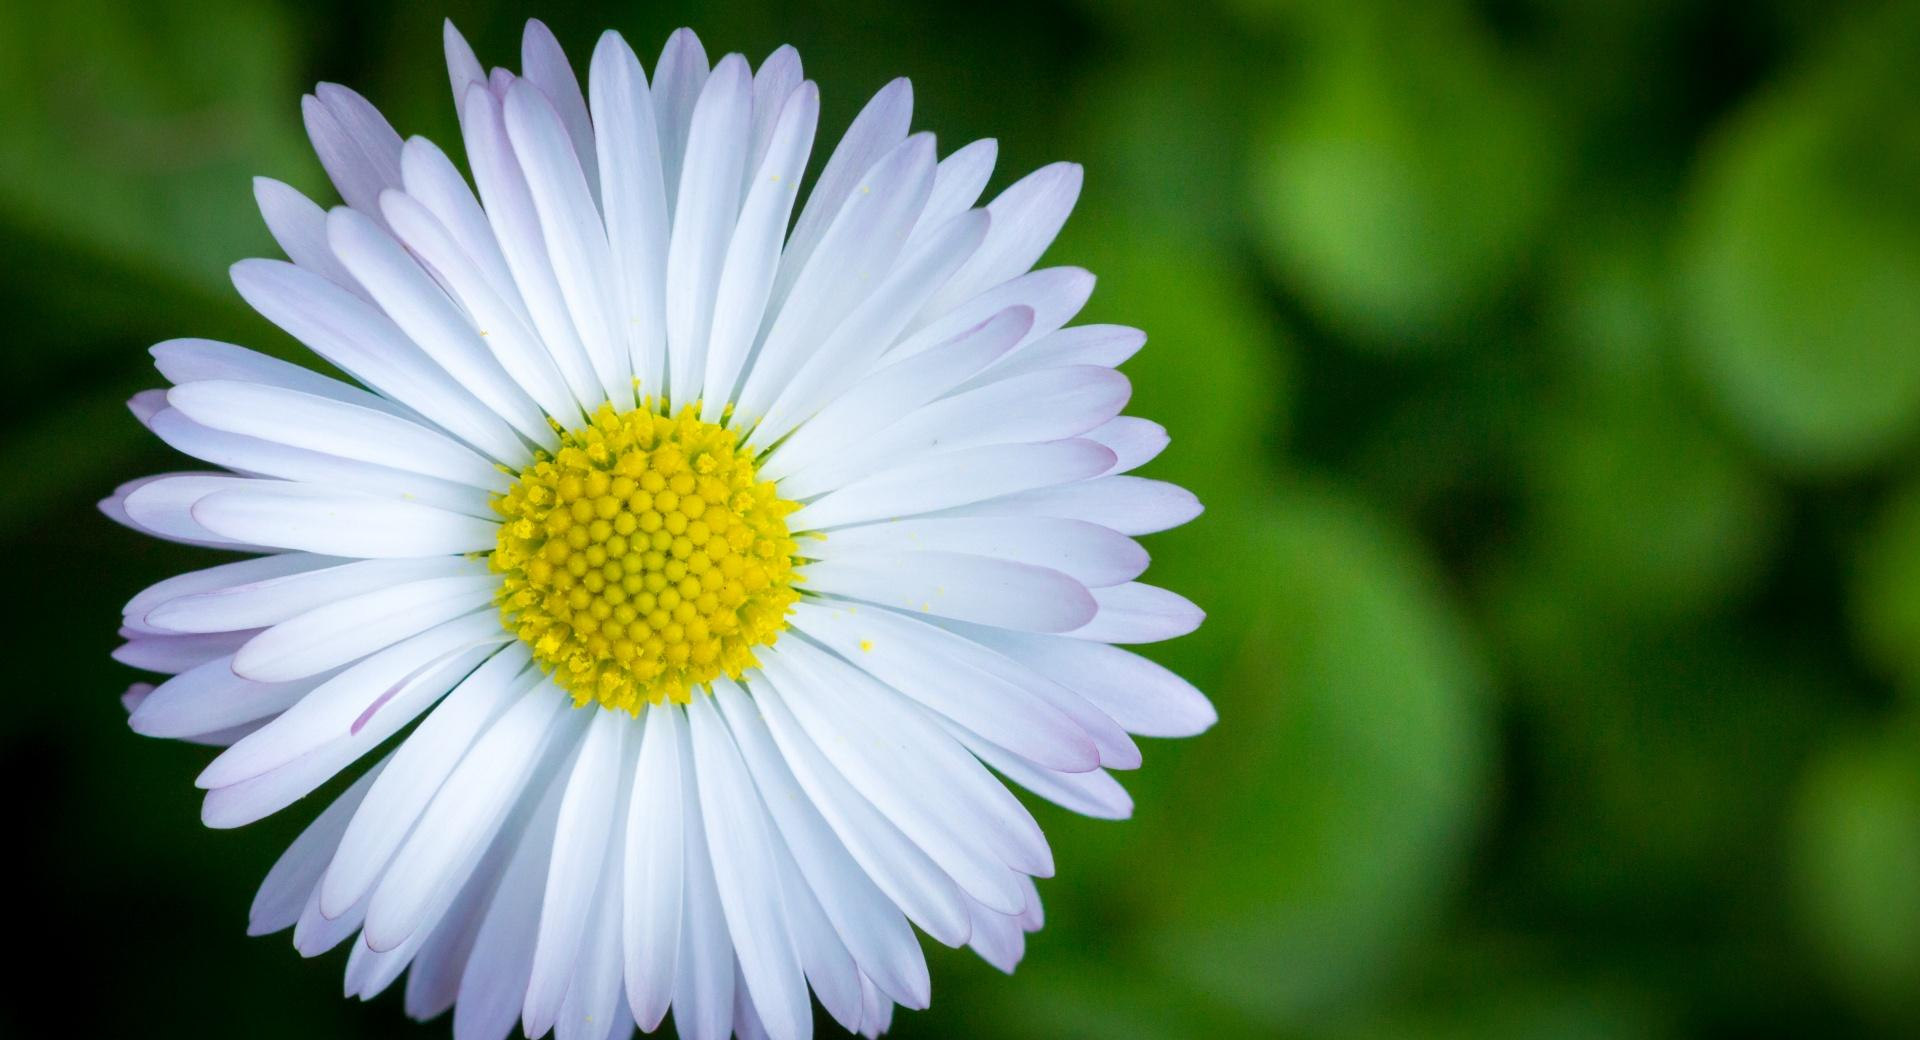 The Camomile at 1024 x 768 size wallpapers HD quality